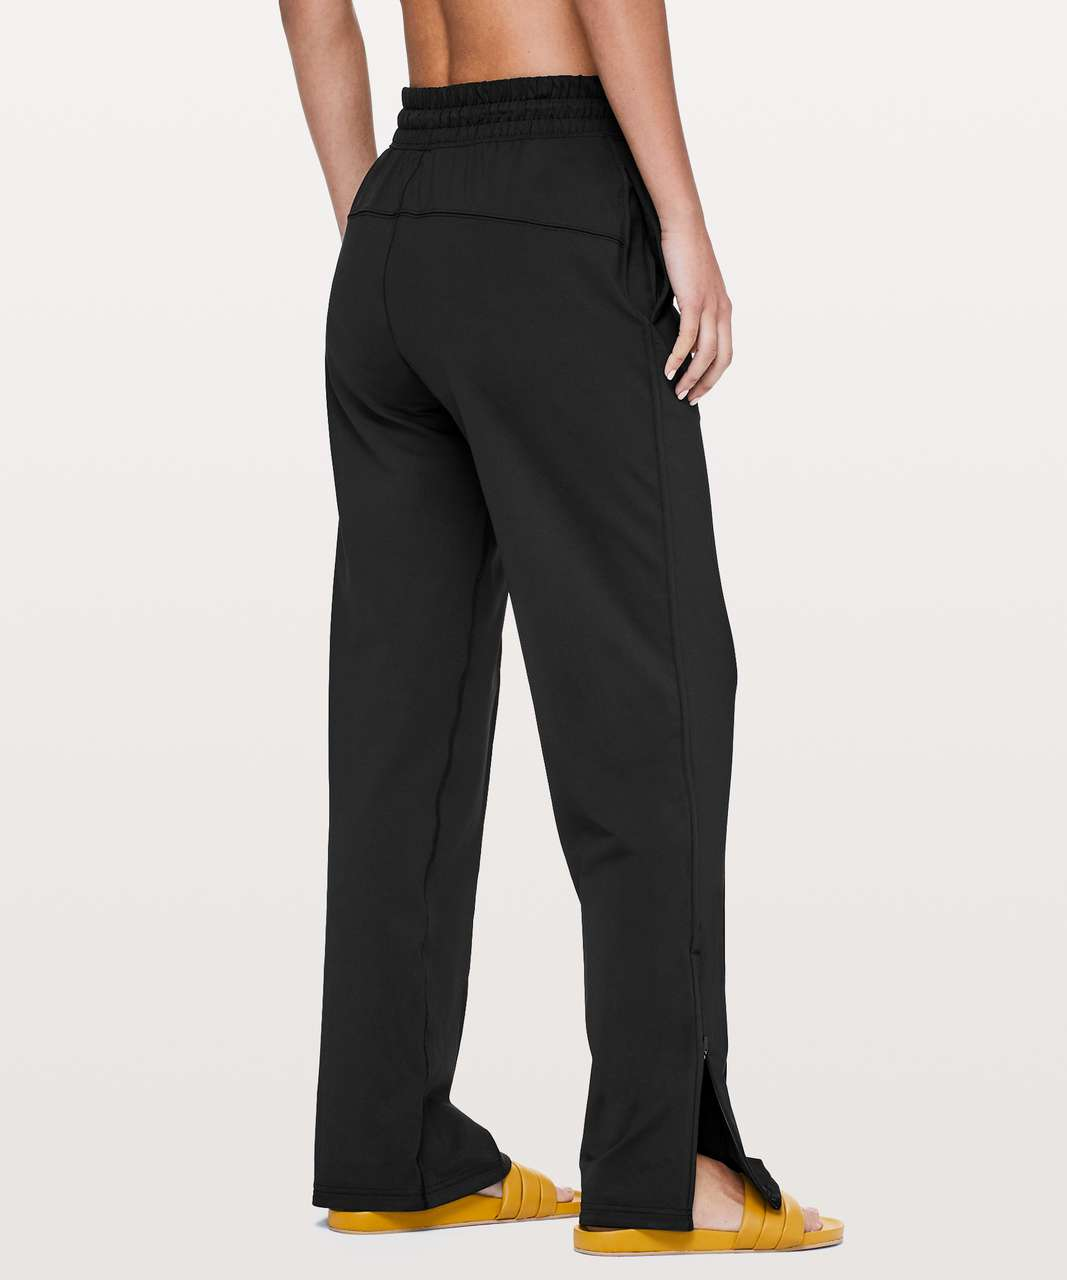 49d168af6 Lululemon Greatest Stride Pant  31